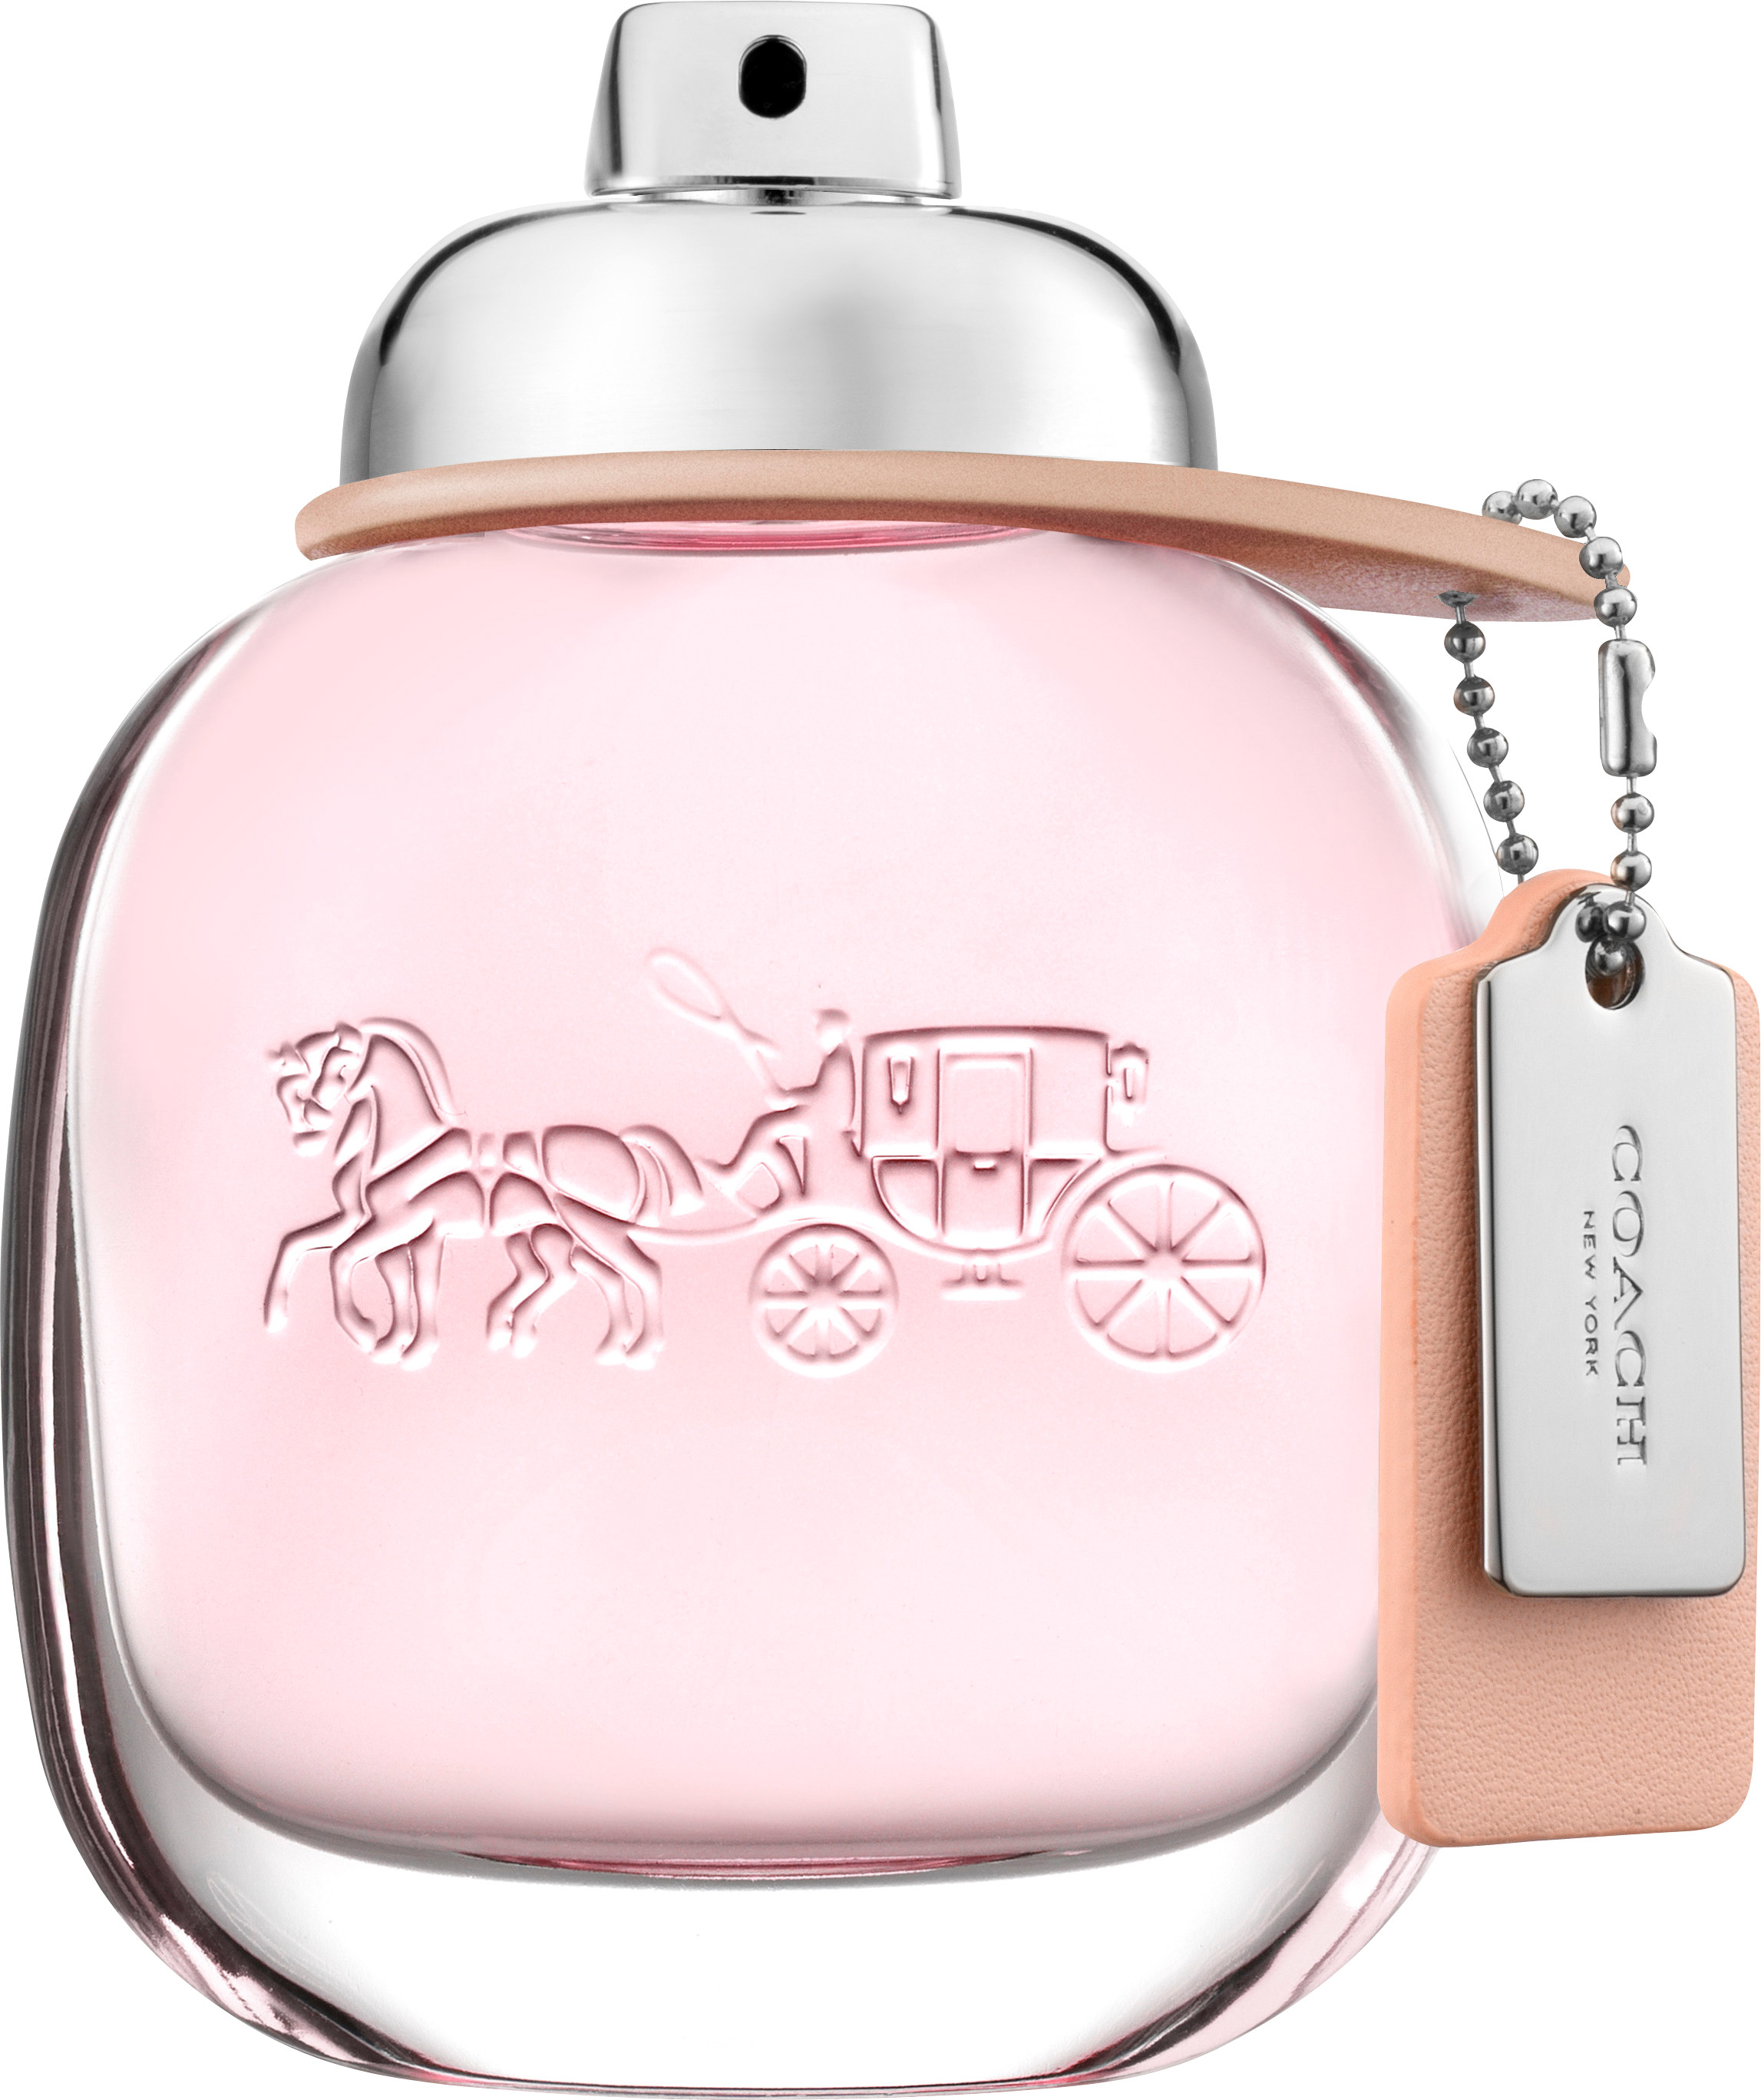 Coach Eau De Parfum - Best 15 Fragrances for Men & Women to Buy this Season 2018